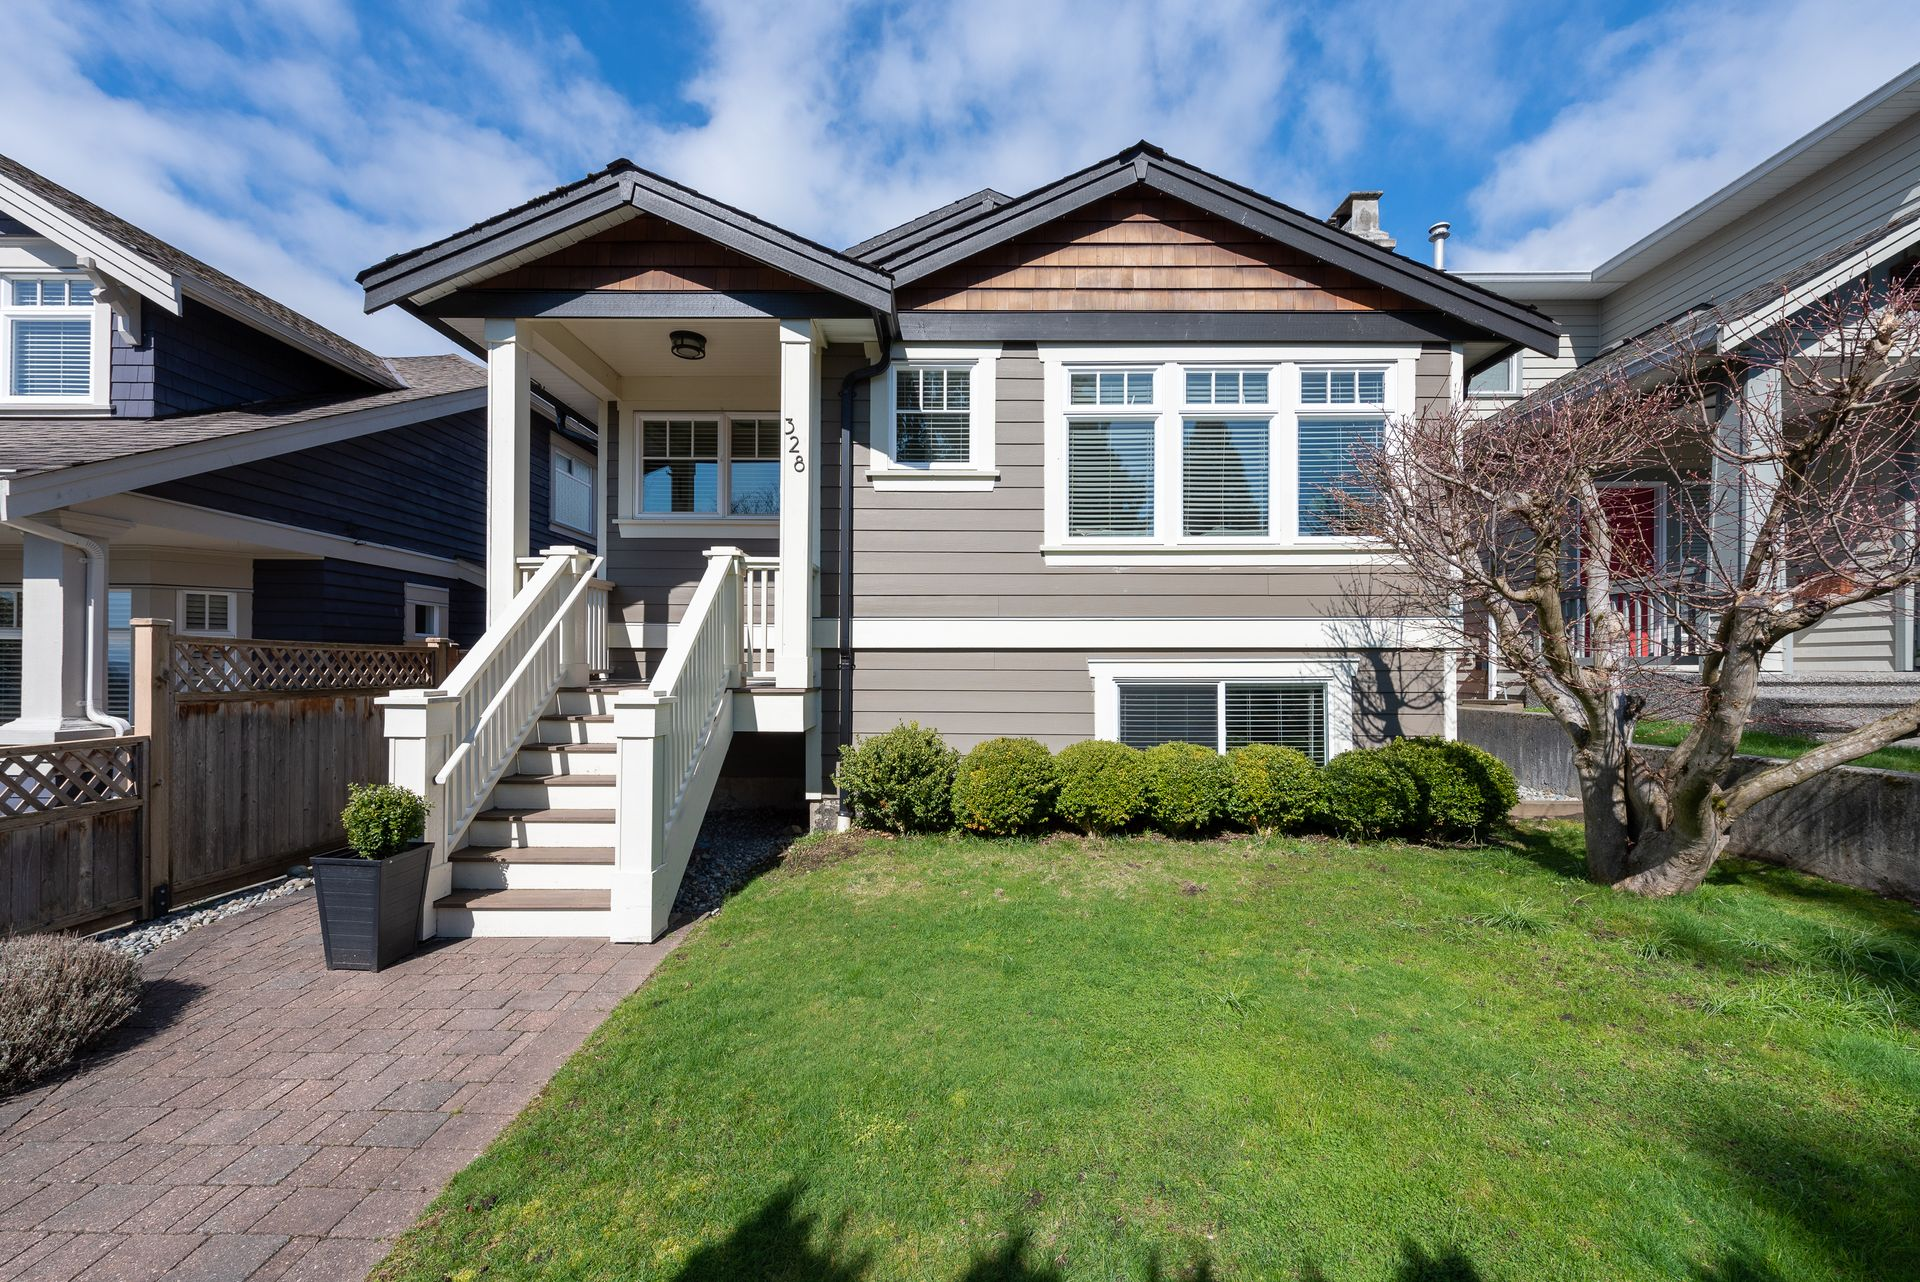 328-26th-st-w-north-vancouver-360hometours-02-copy at